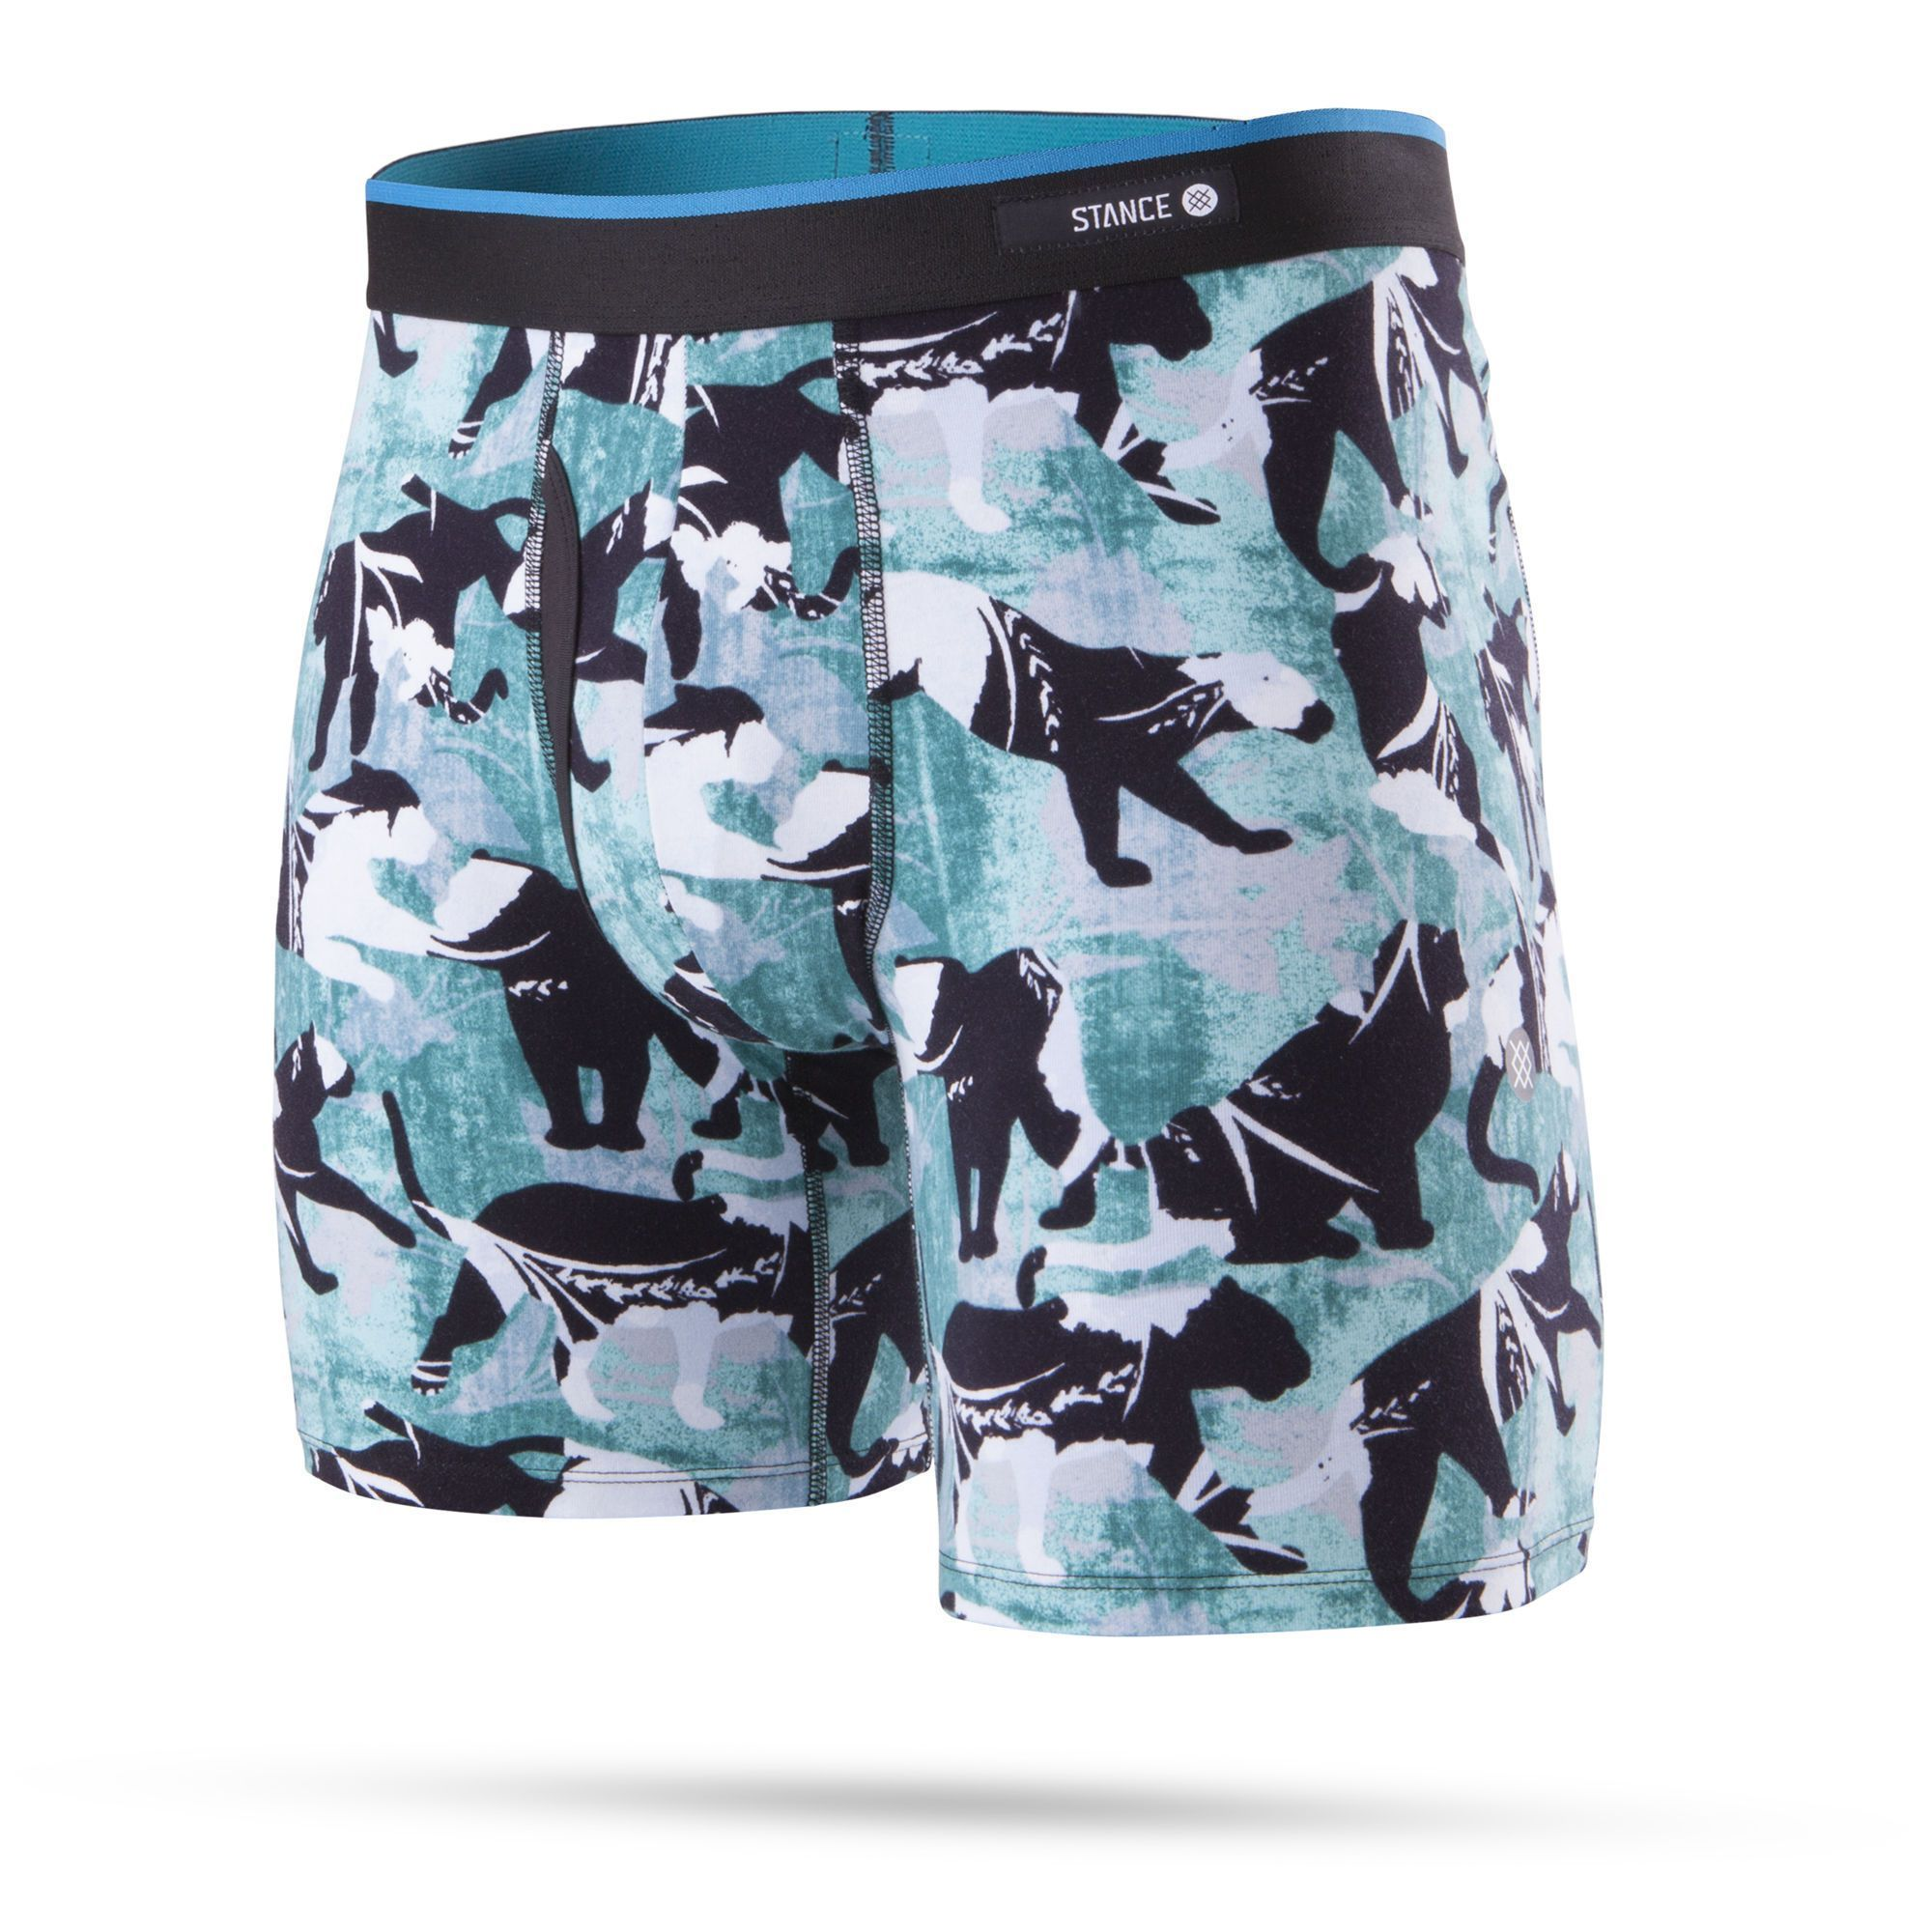 Stance - Panthers Boxer Brief Underwear | Men's - Knock Your Socks Off